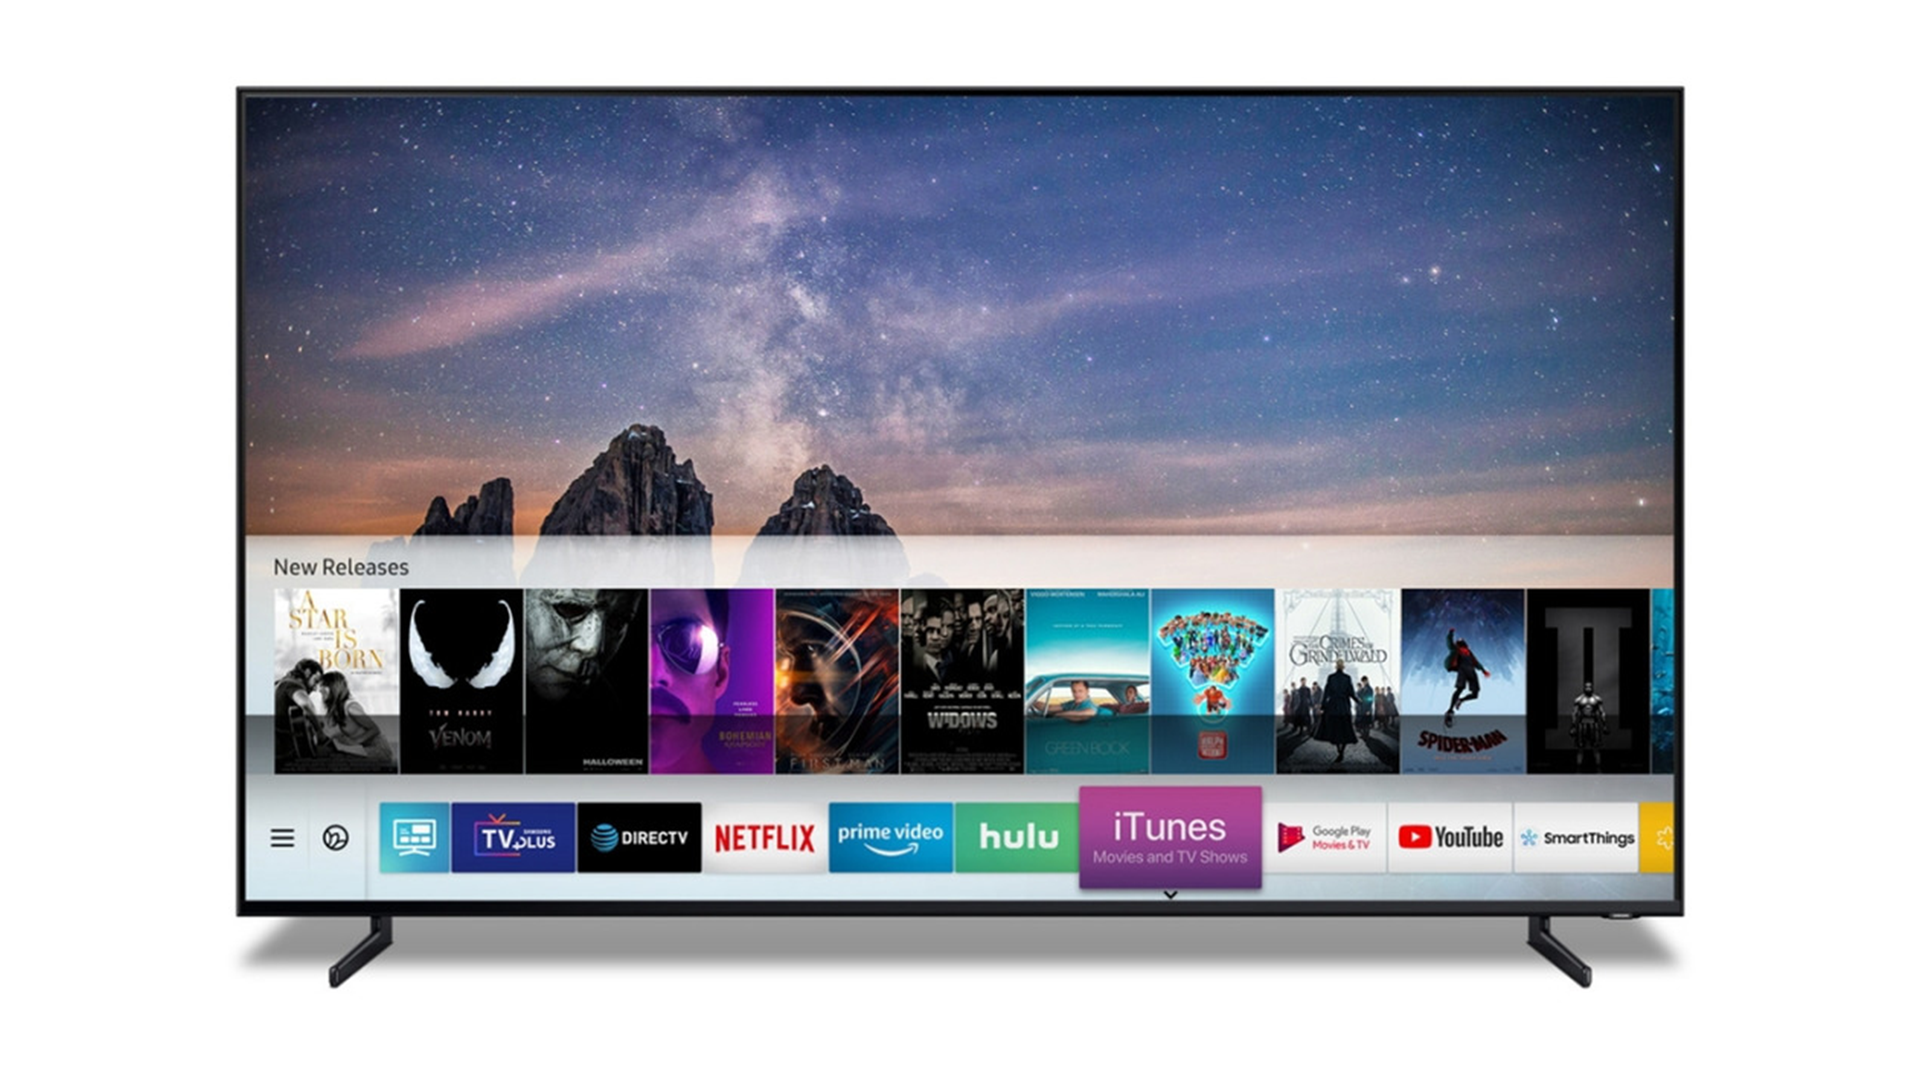 Samsung TV's Featuring iTunes To Launch In Canada This